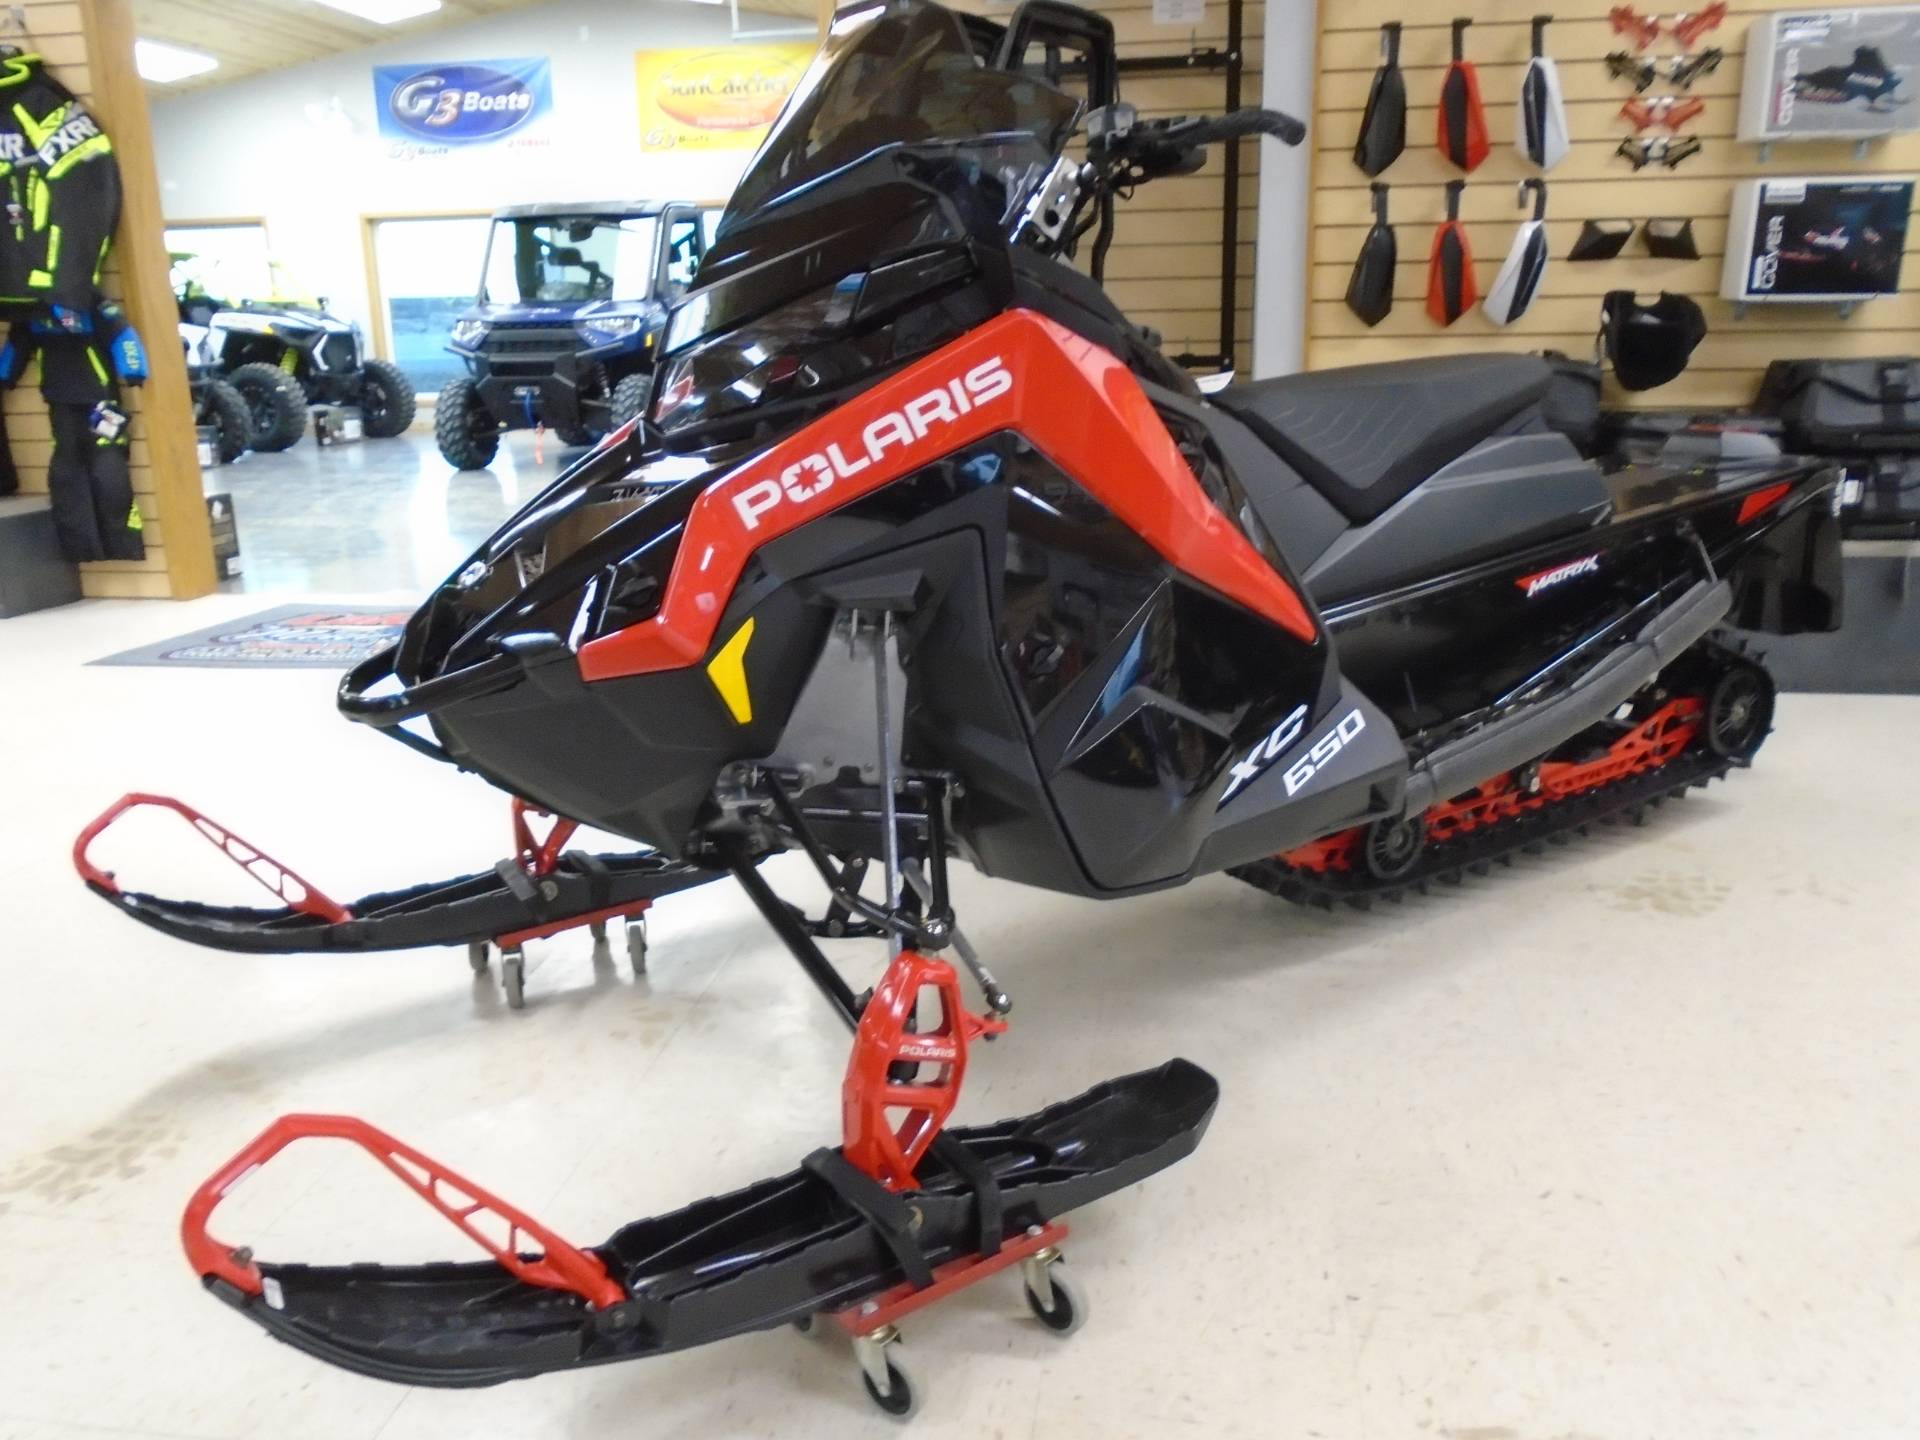 2021 Polaris 650 Indy XC 137 Launch Edition Factory Choice in Lake Mills, Iowa - Photo 1